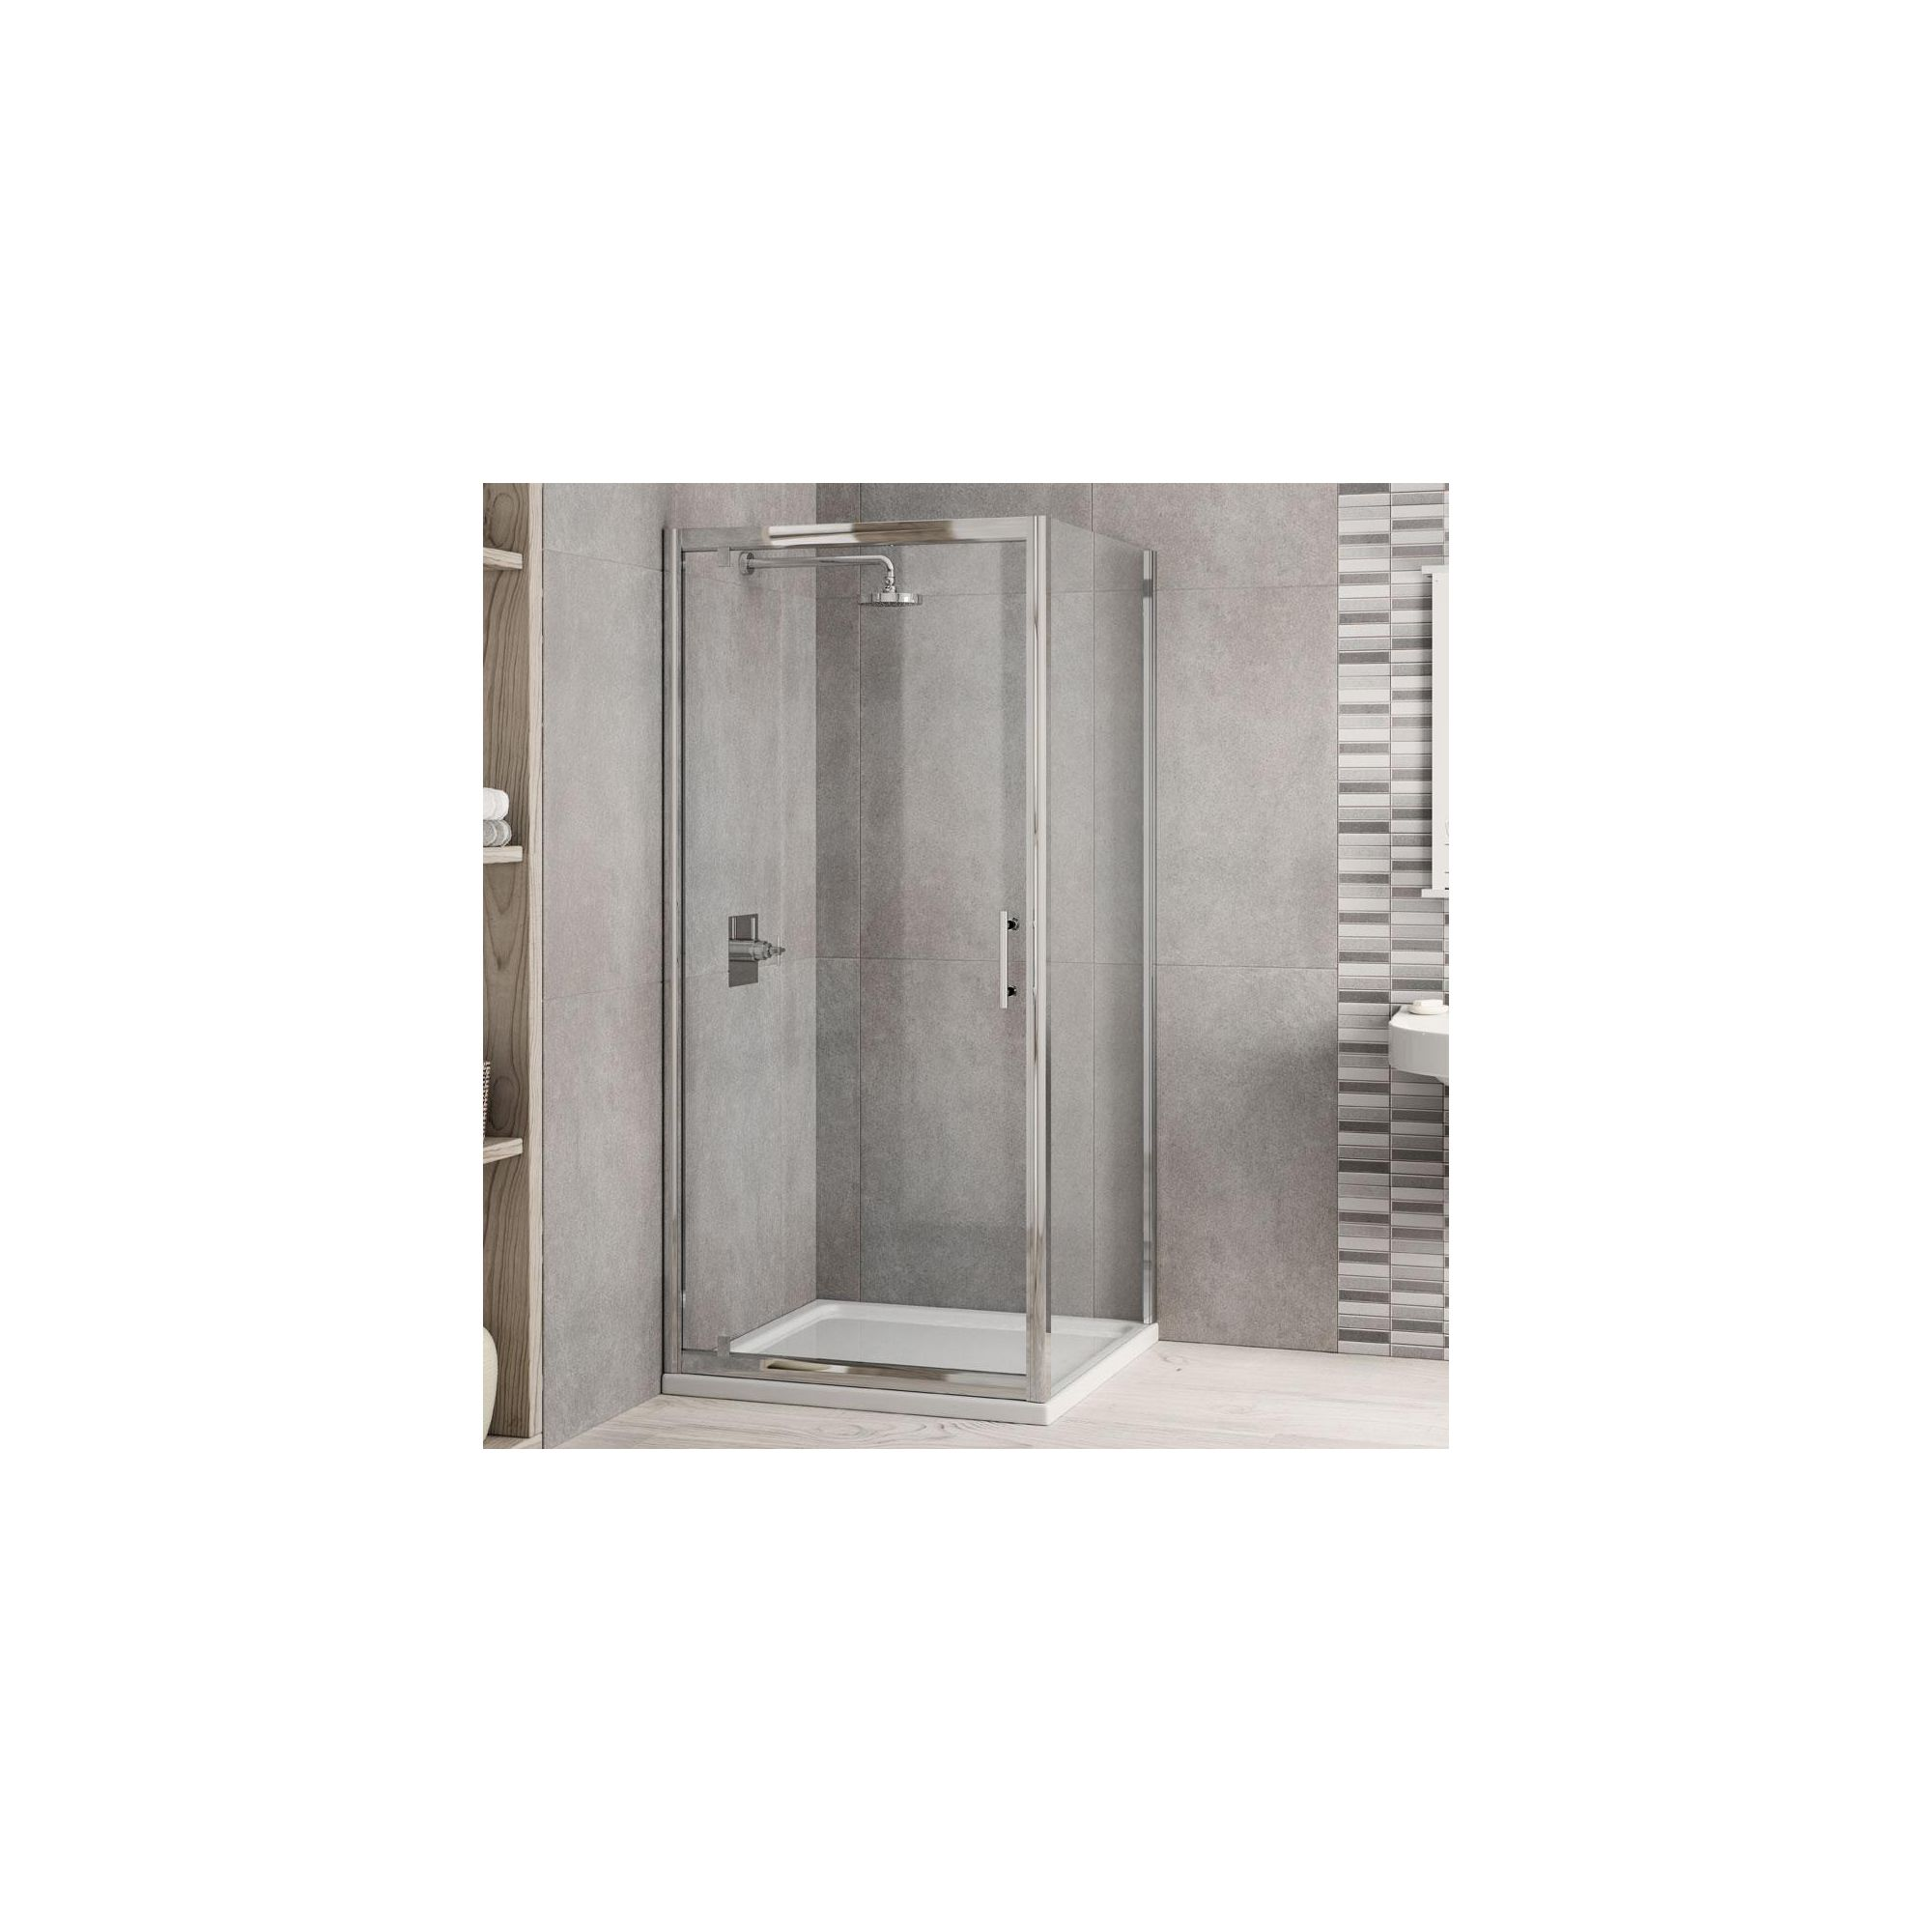 Elemis Inspire Pivot Door Shower Enclosure, 1000mm x 900mm, 6mm Glass, Low Profile Tray at Tesco Direct